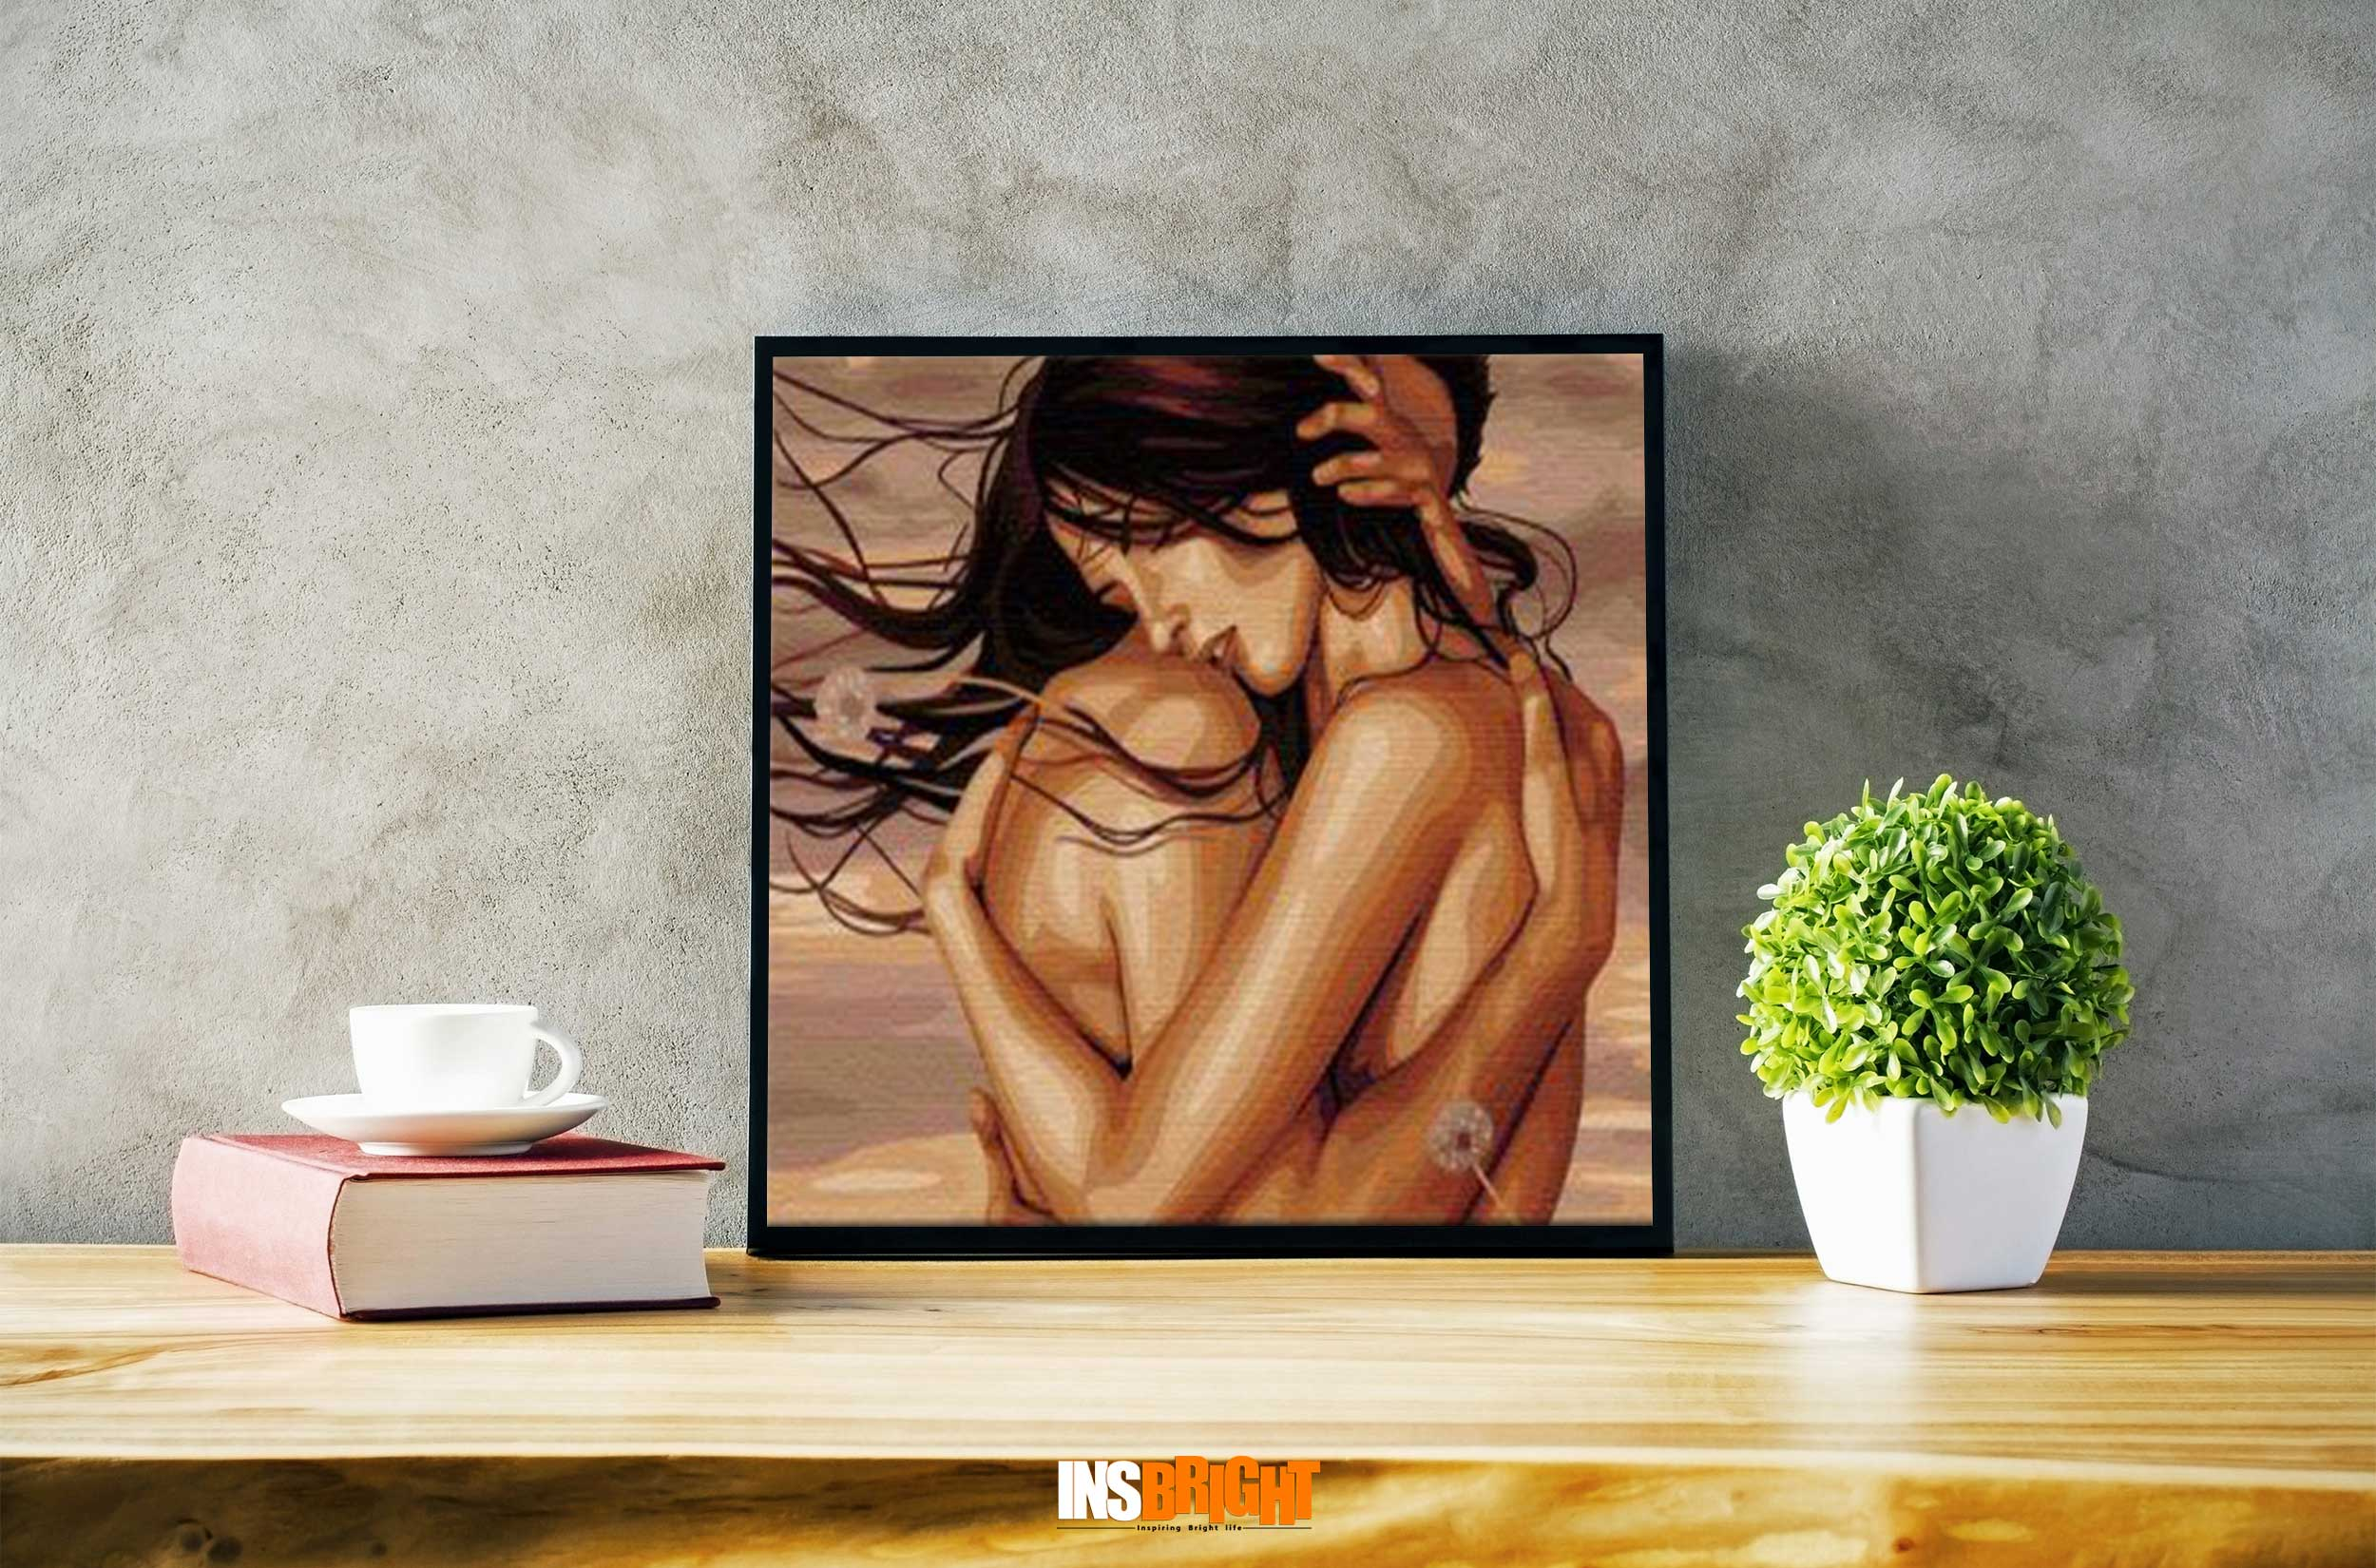 famous romantic love couples paintings for bedroom for sale